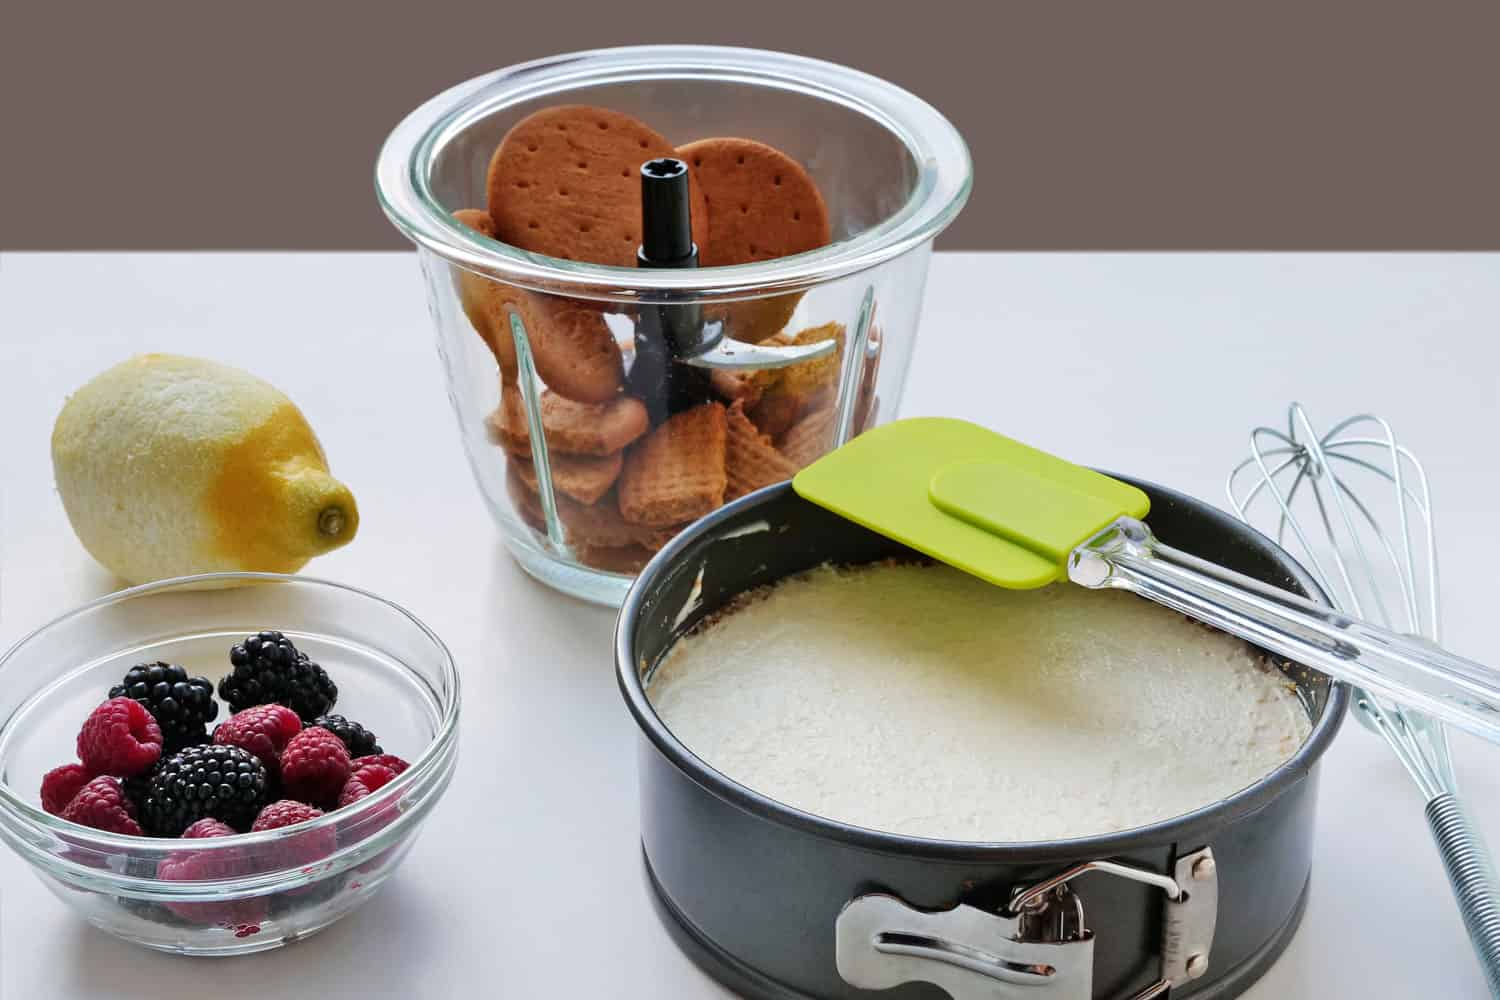 Ingredients for a delicious cheesecake on a springform pan